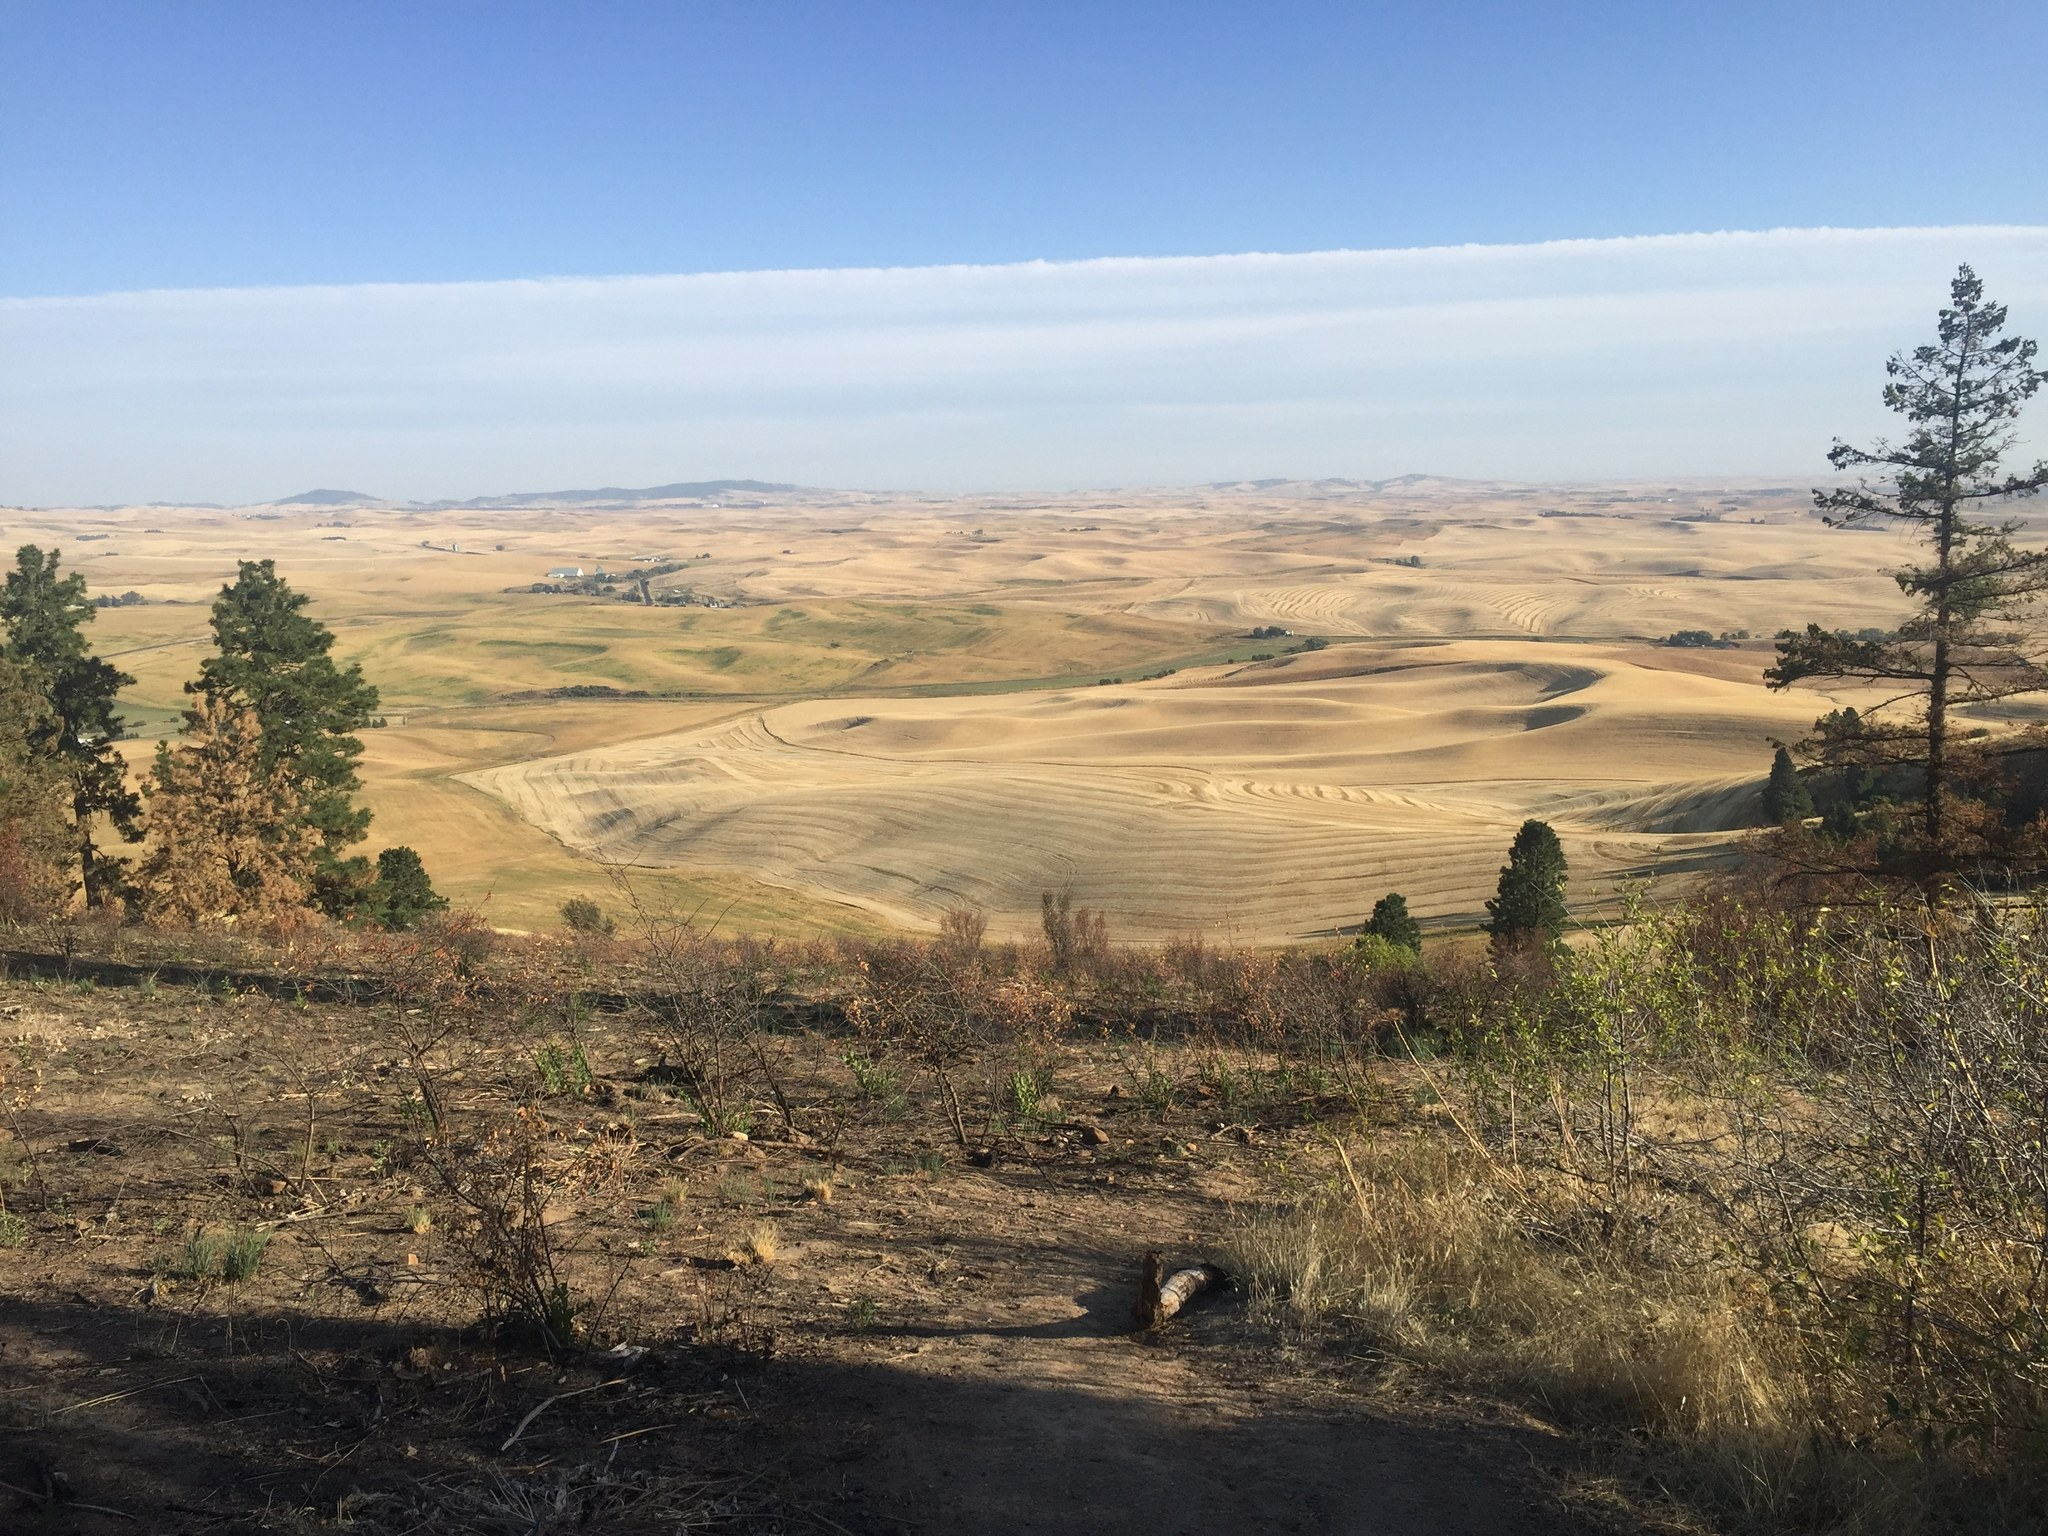 The view from Kamiak Butte. Photo by RLucido.